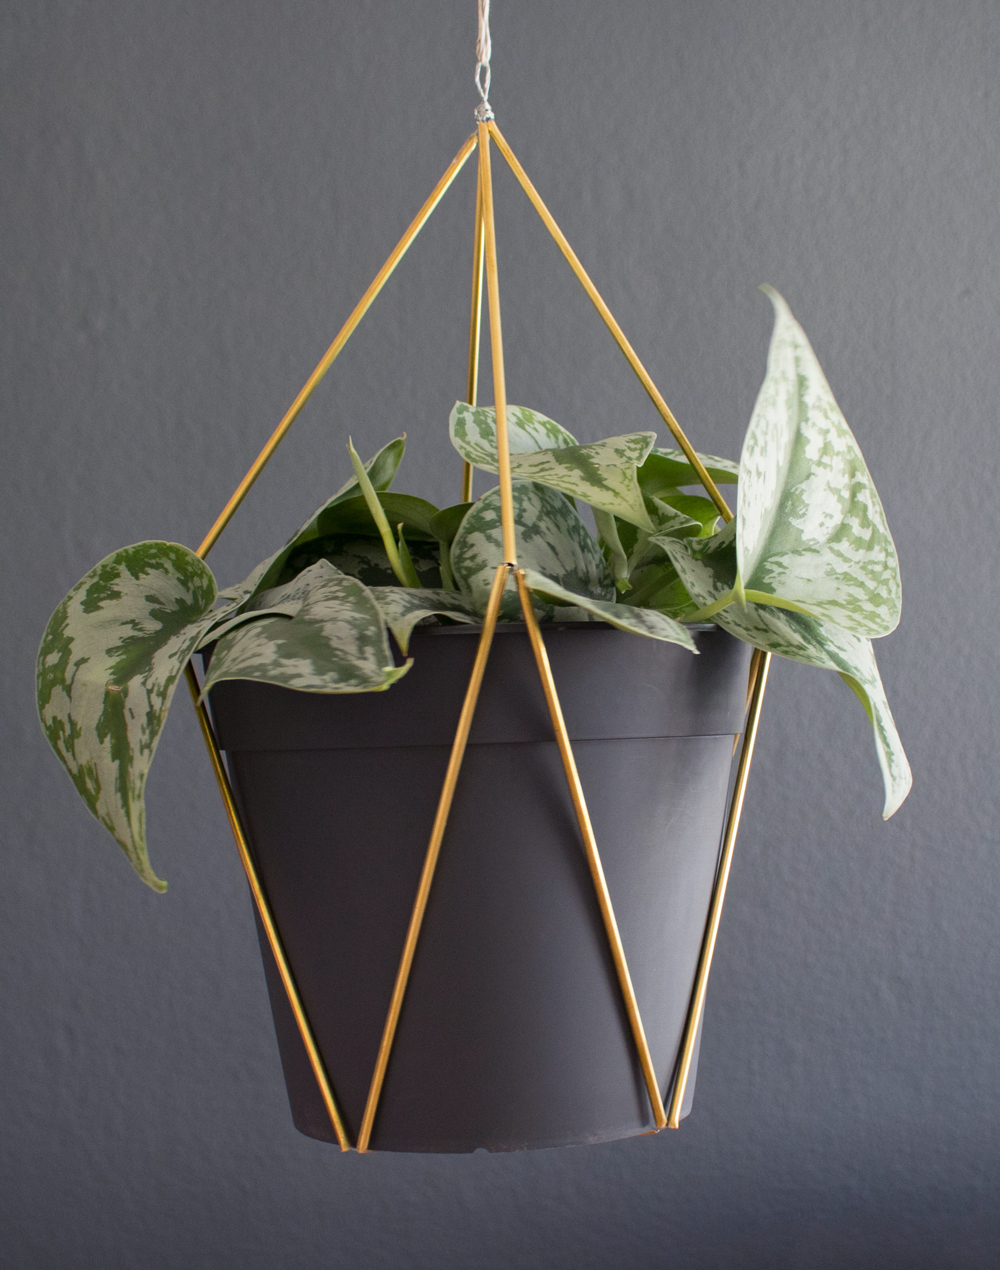 diy-hanging-planter-messing-rohre-gold-6